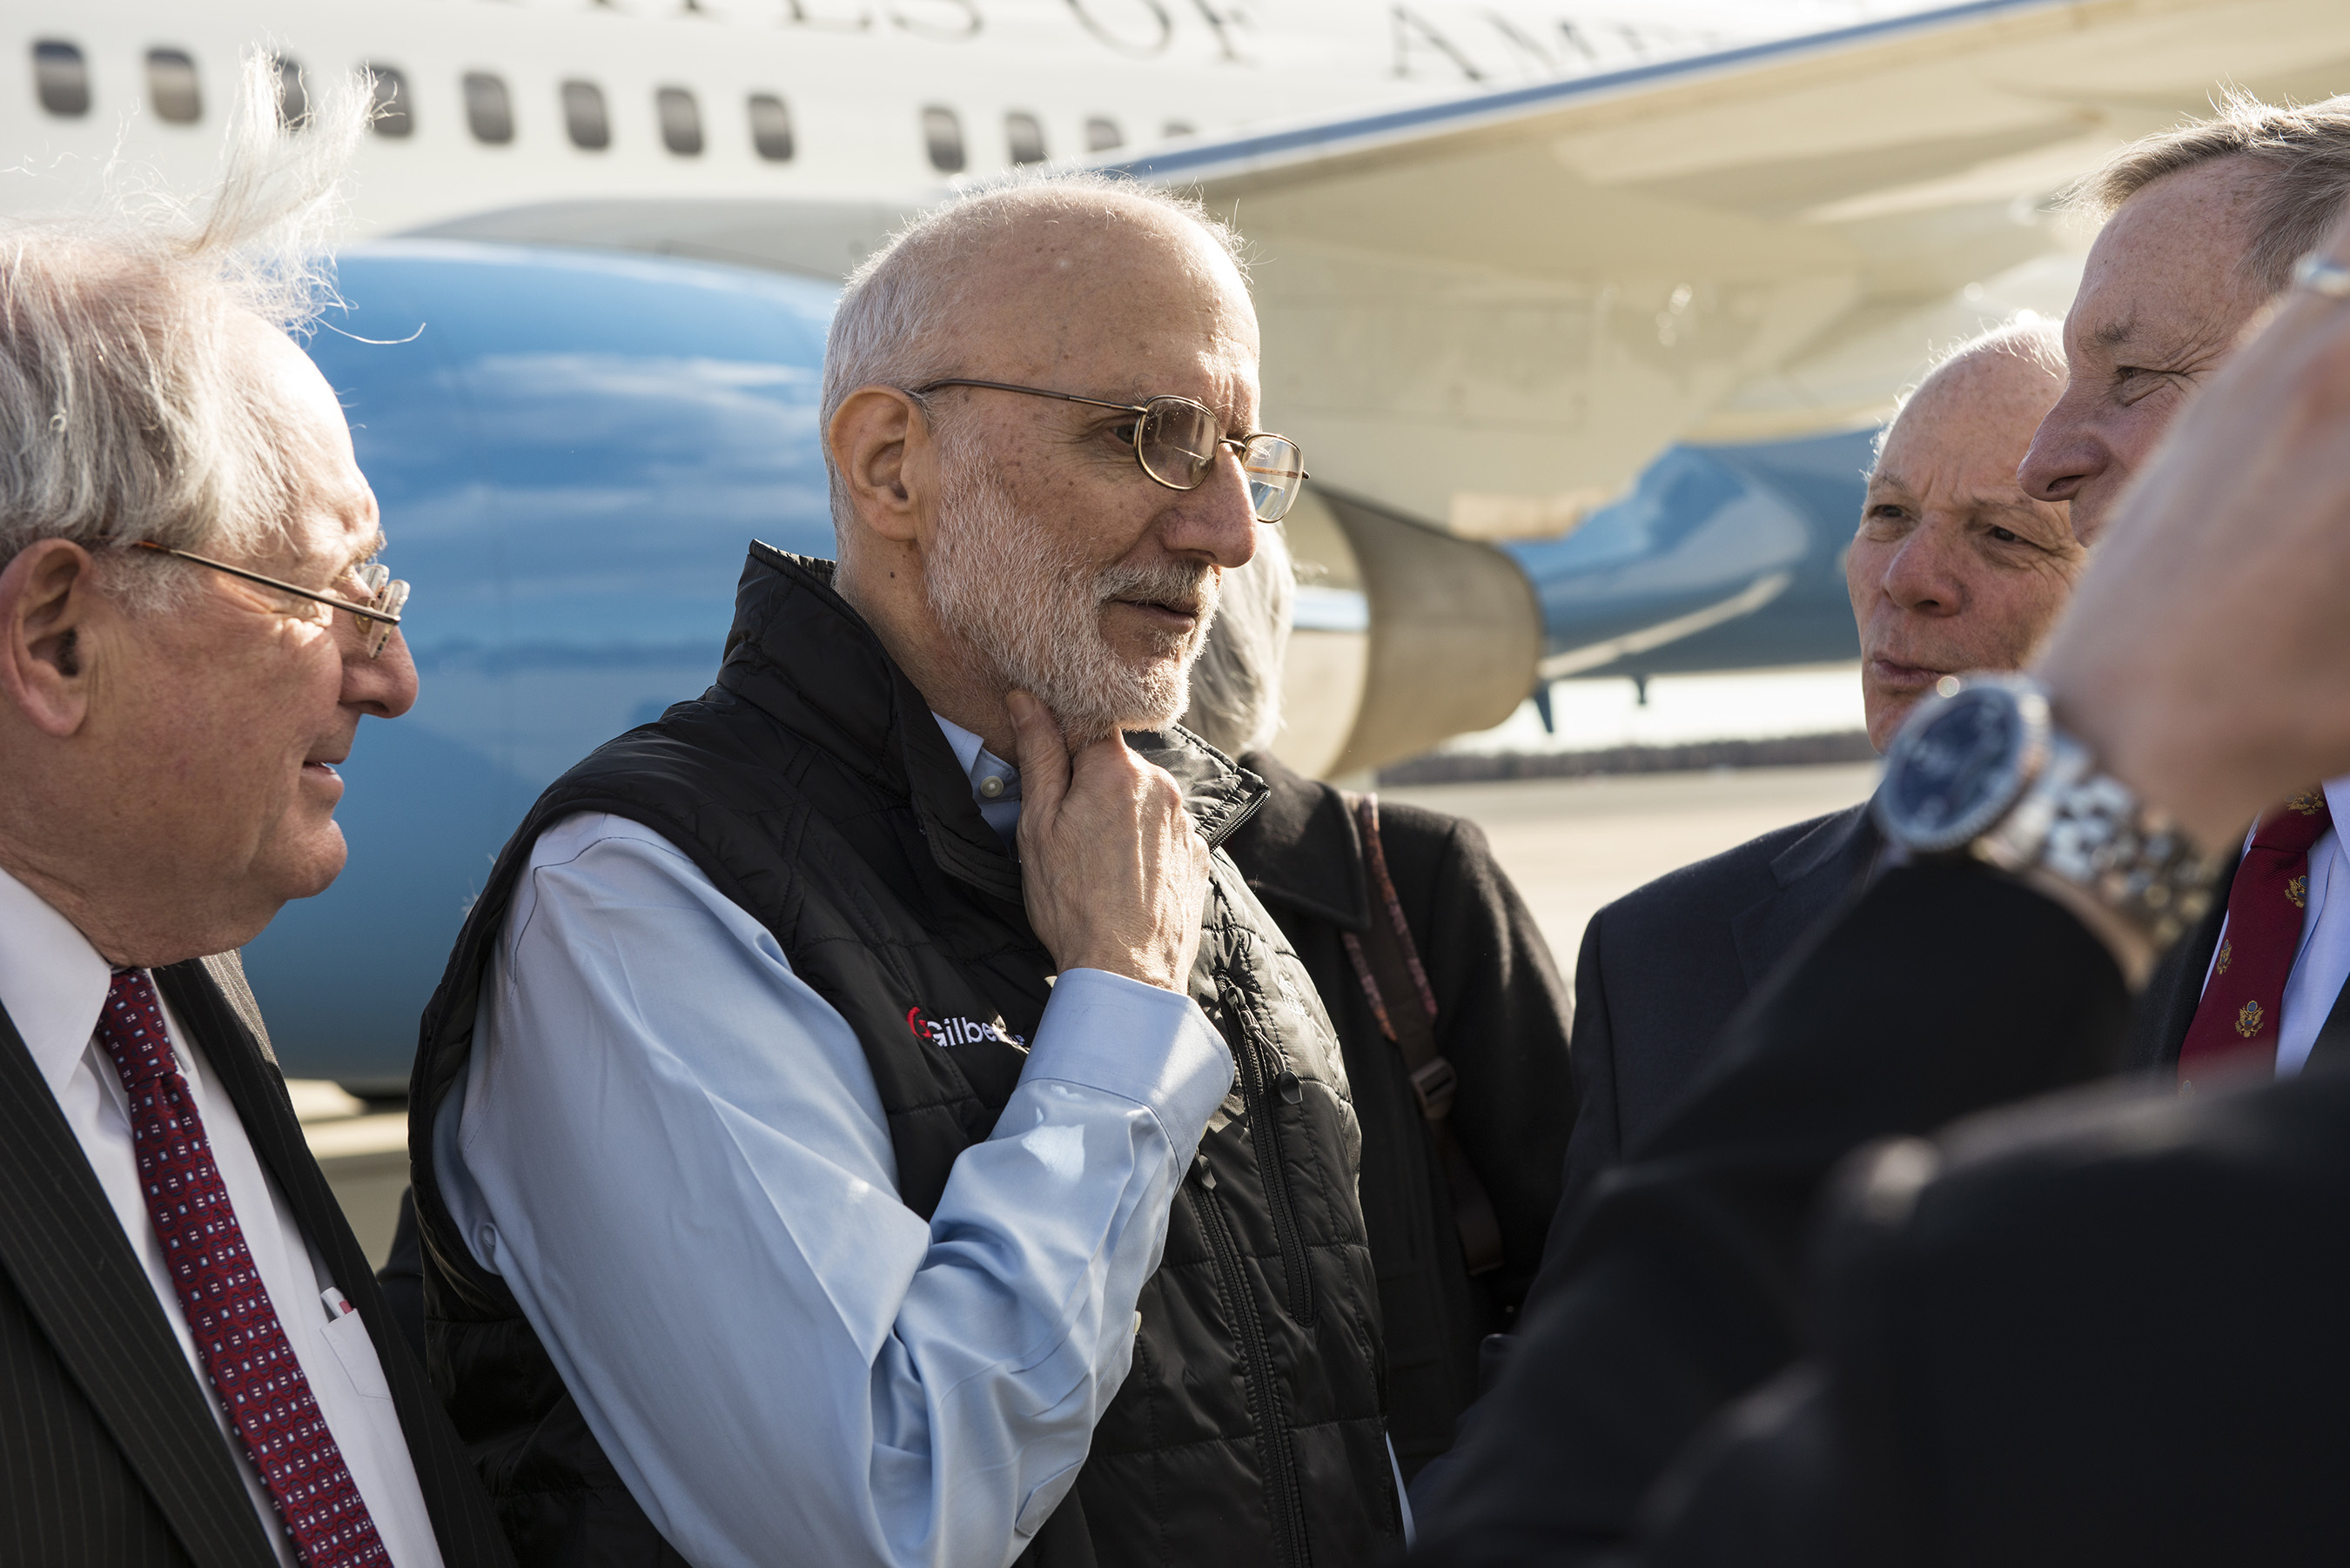 alan gross says goodbye